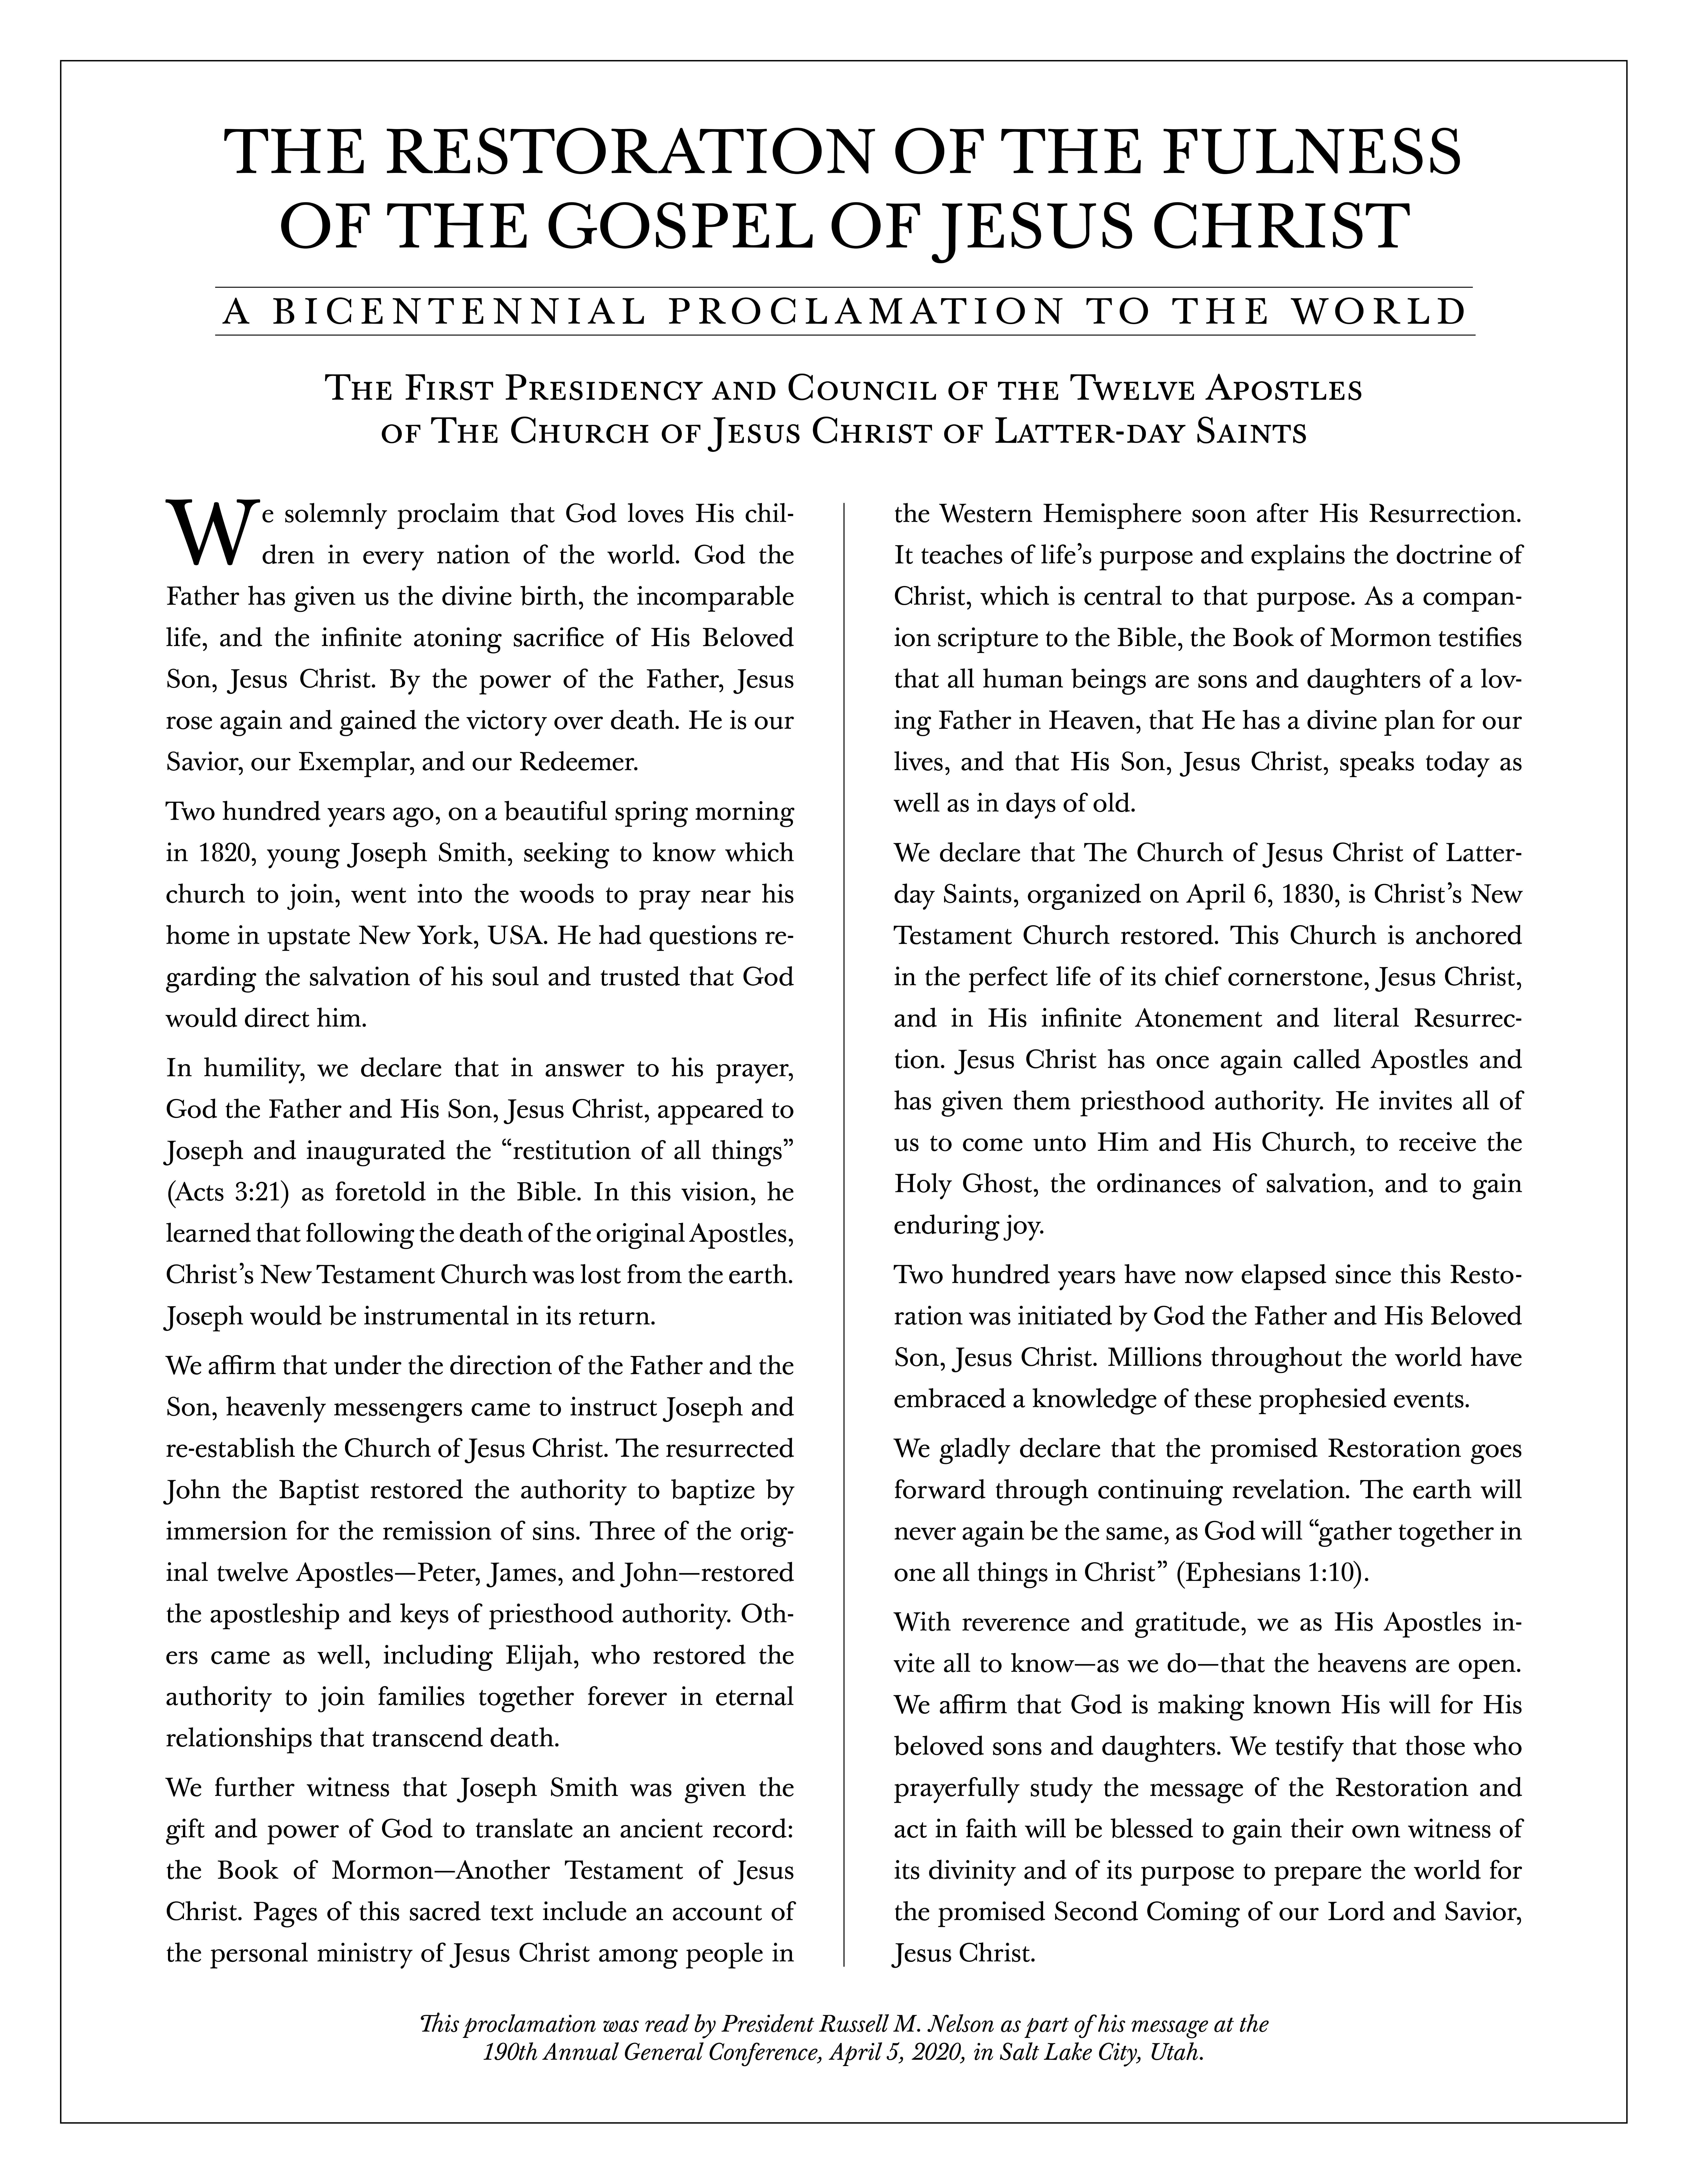 """The official poster of """"The Restoration of the Fulness of the Gospel of Jesus Christ: A Bicentennial Proclamation to the World."""""""